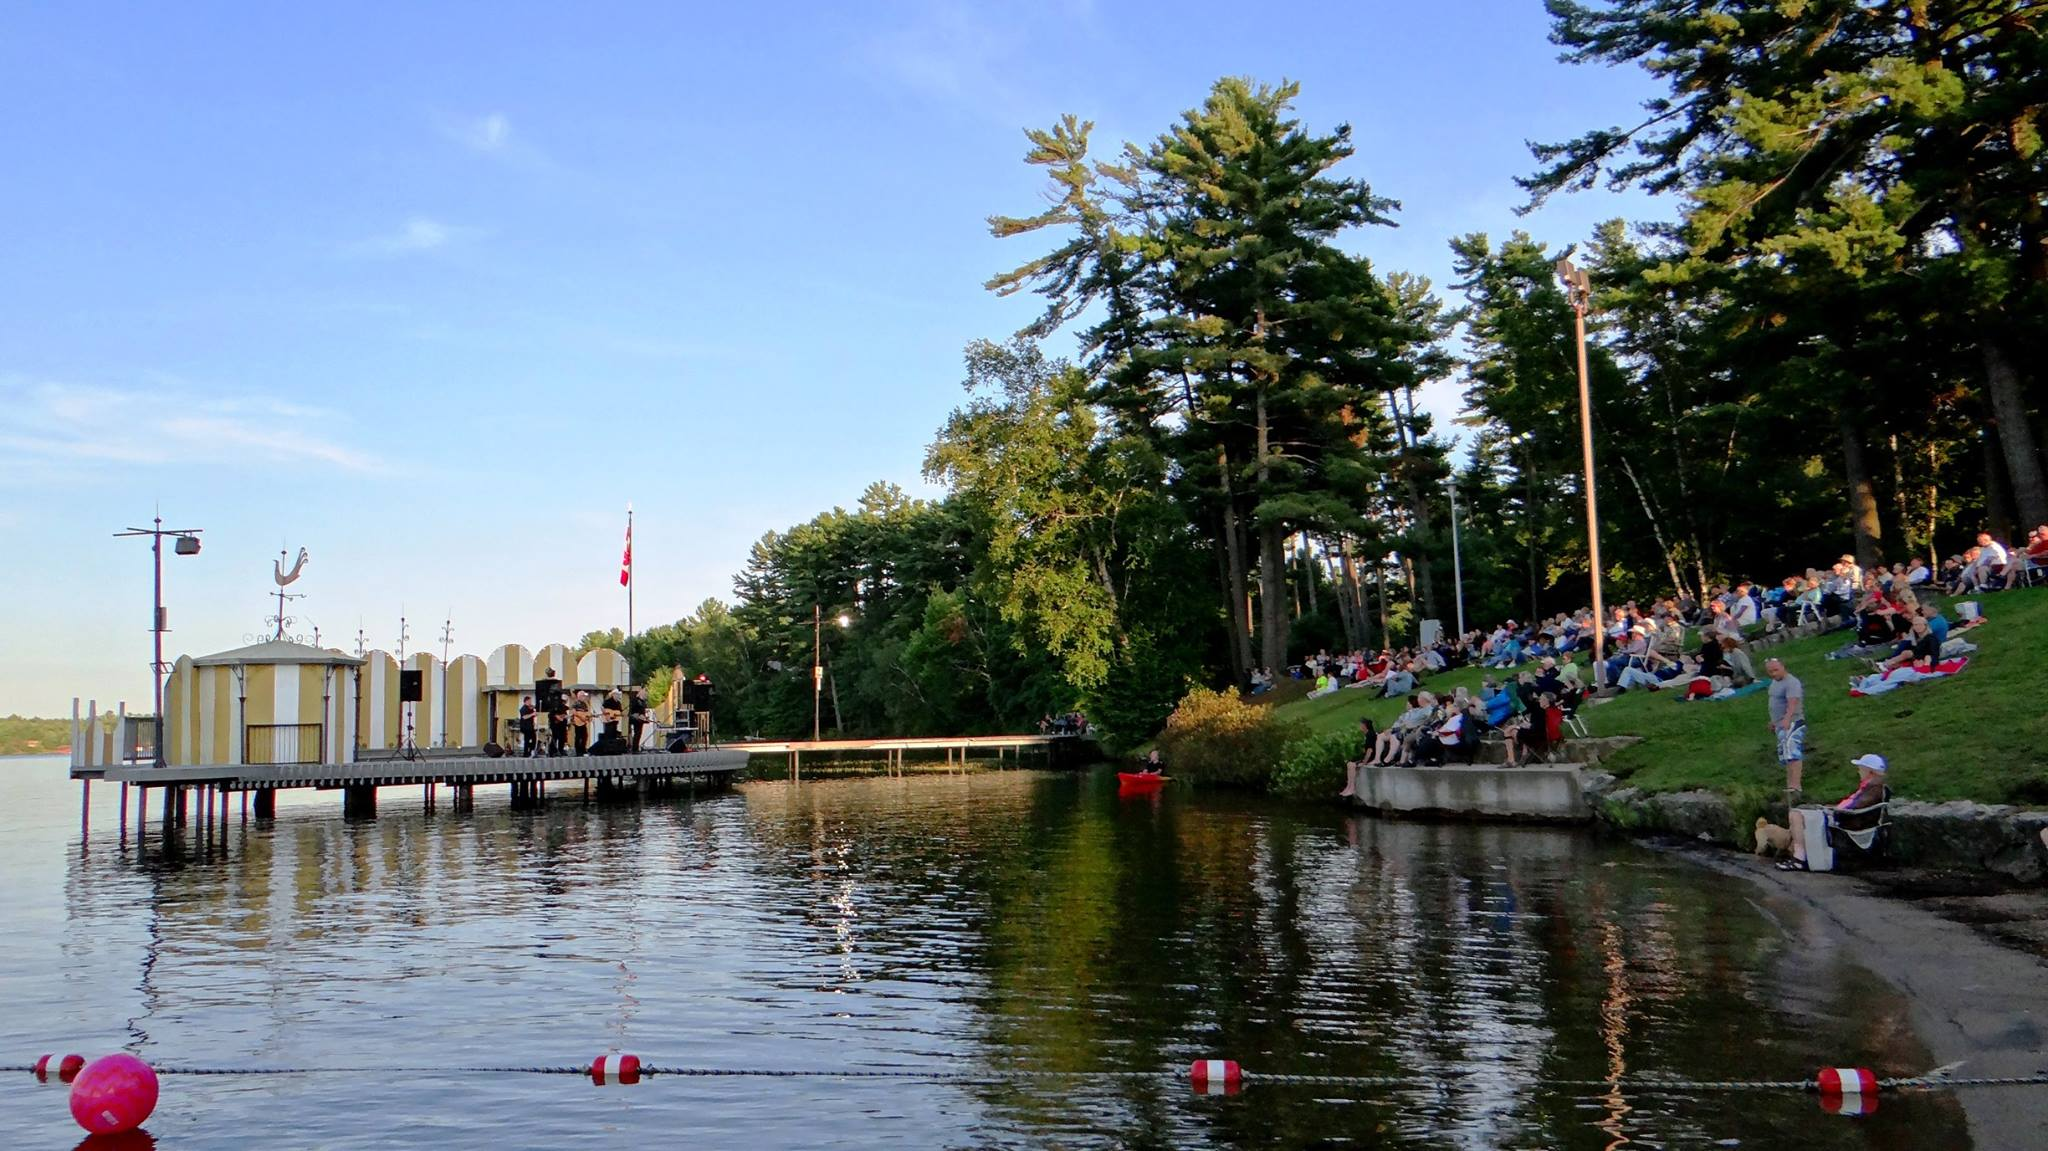 Scenic photo of a band performing on Music on the Barge and Gull Lake with fans